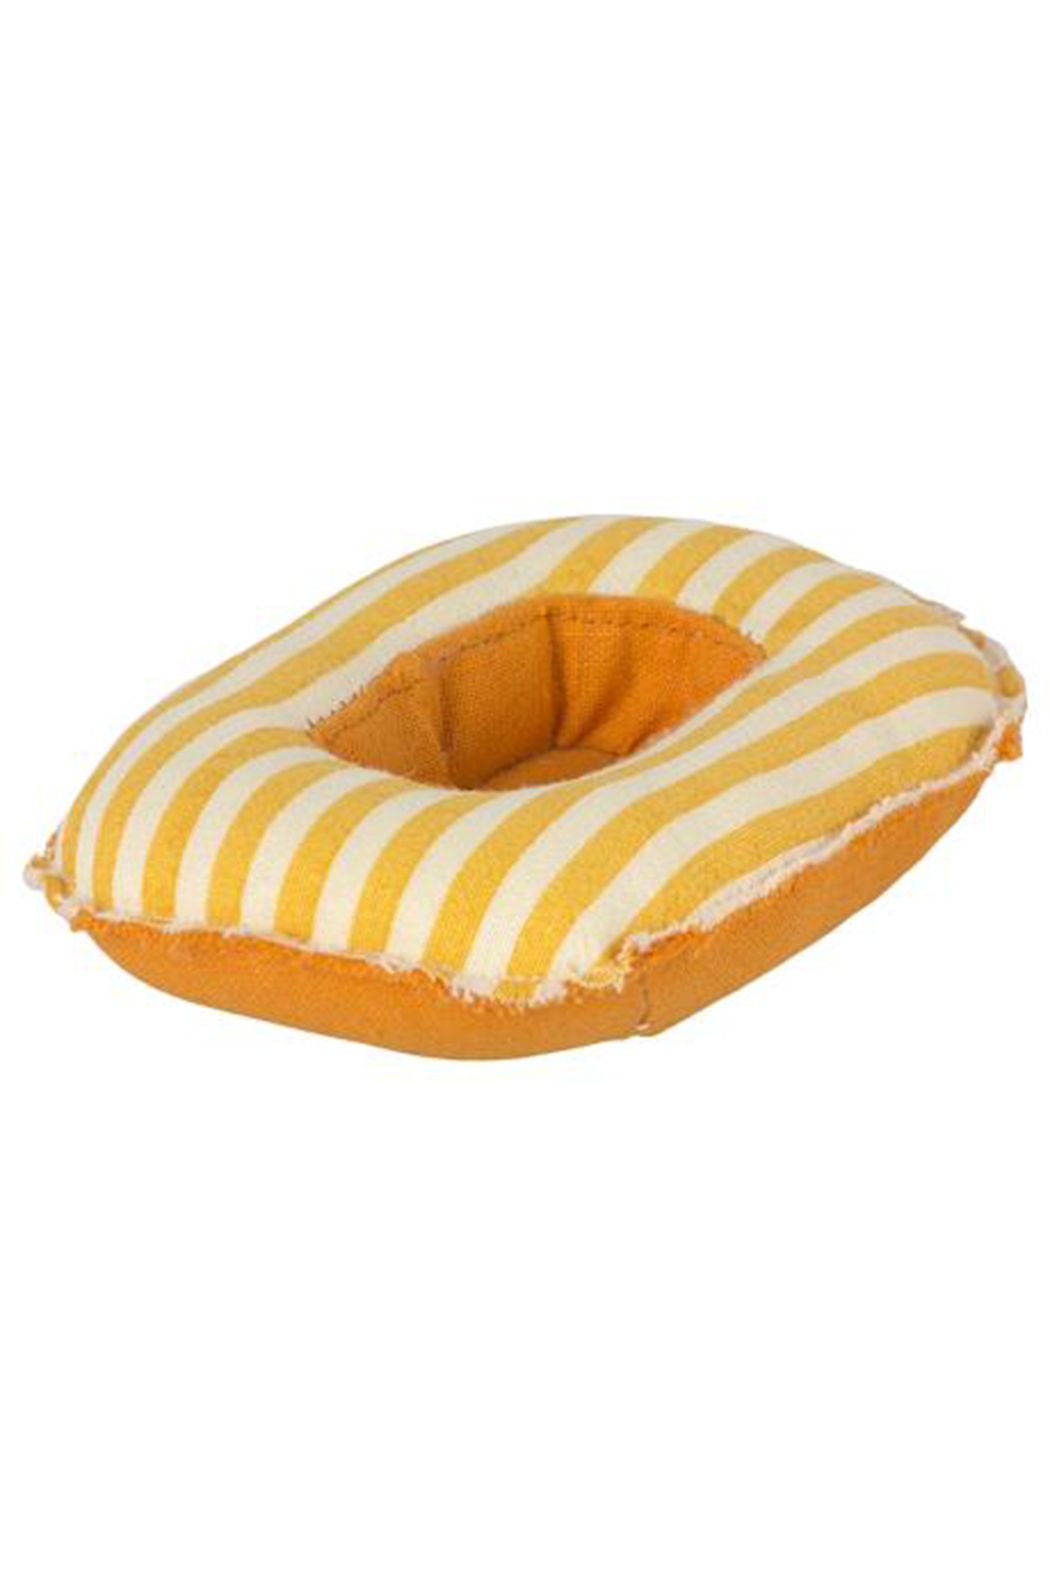 Maileg Rubber Boat - Small Mouse/Yellow Stripe - Main Image